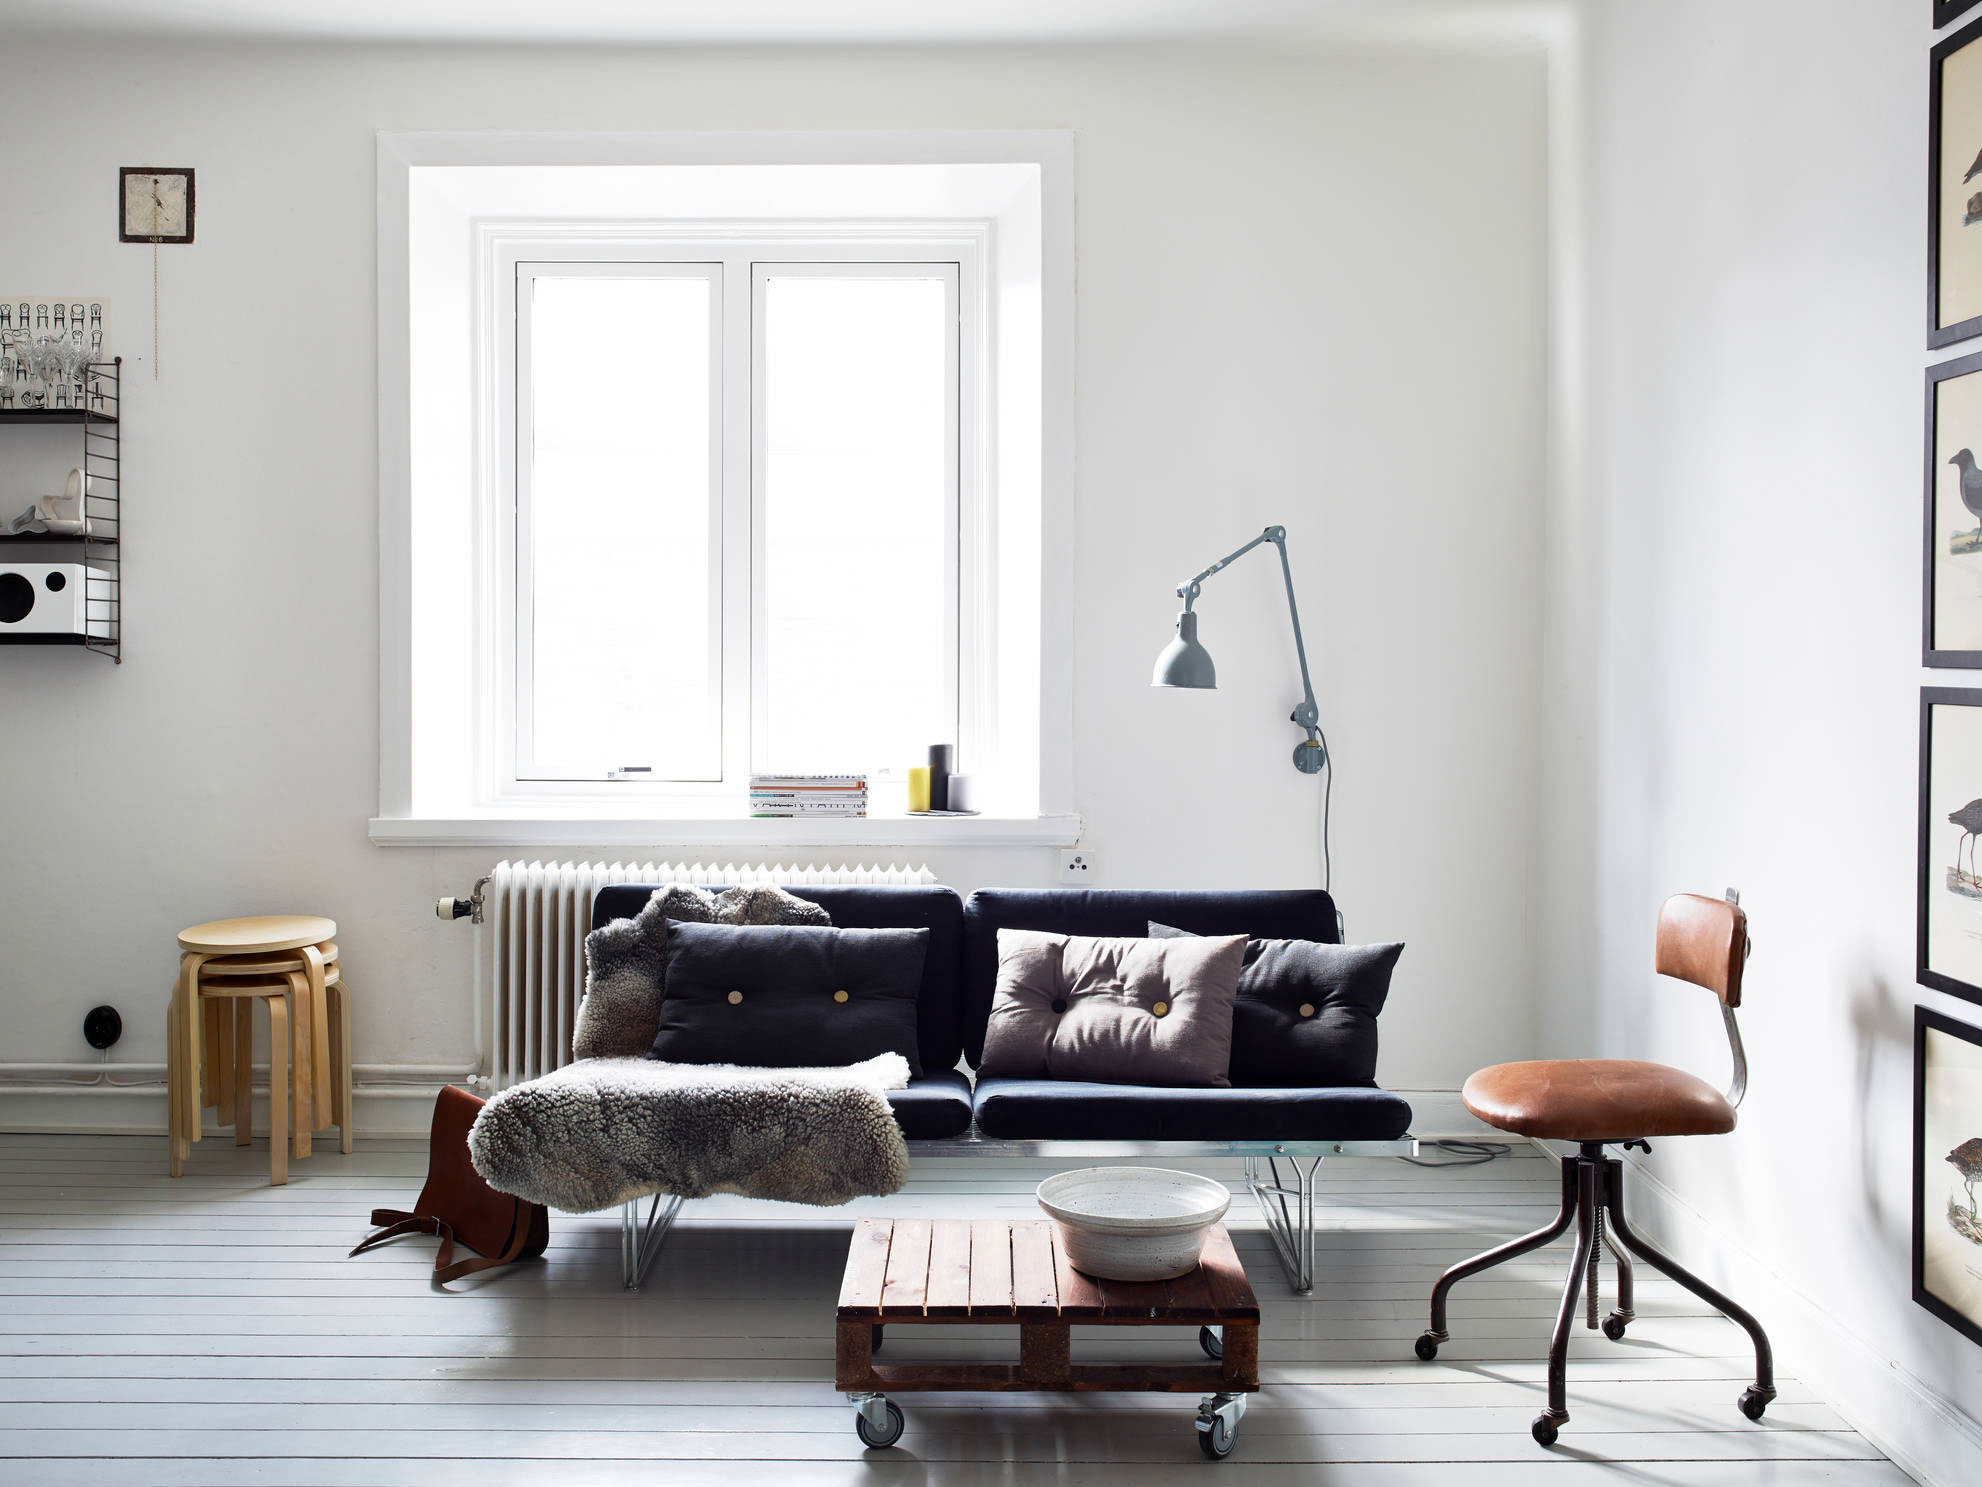 Homedit & Gorgeous Ways To Incorporate Scandinavian Designs Into Your Home